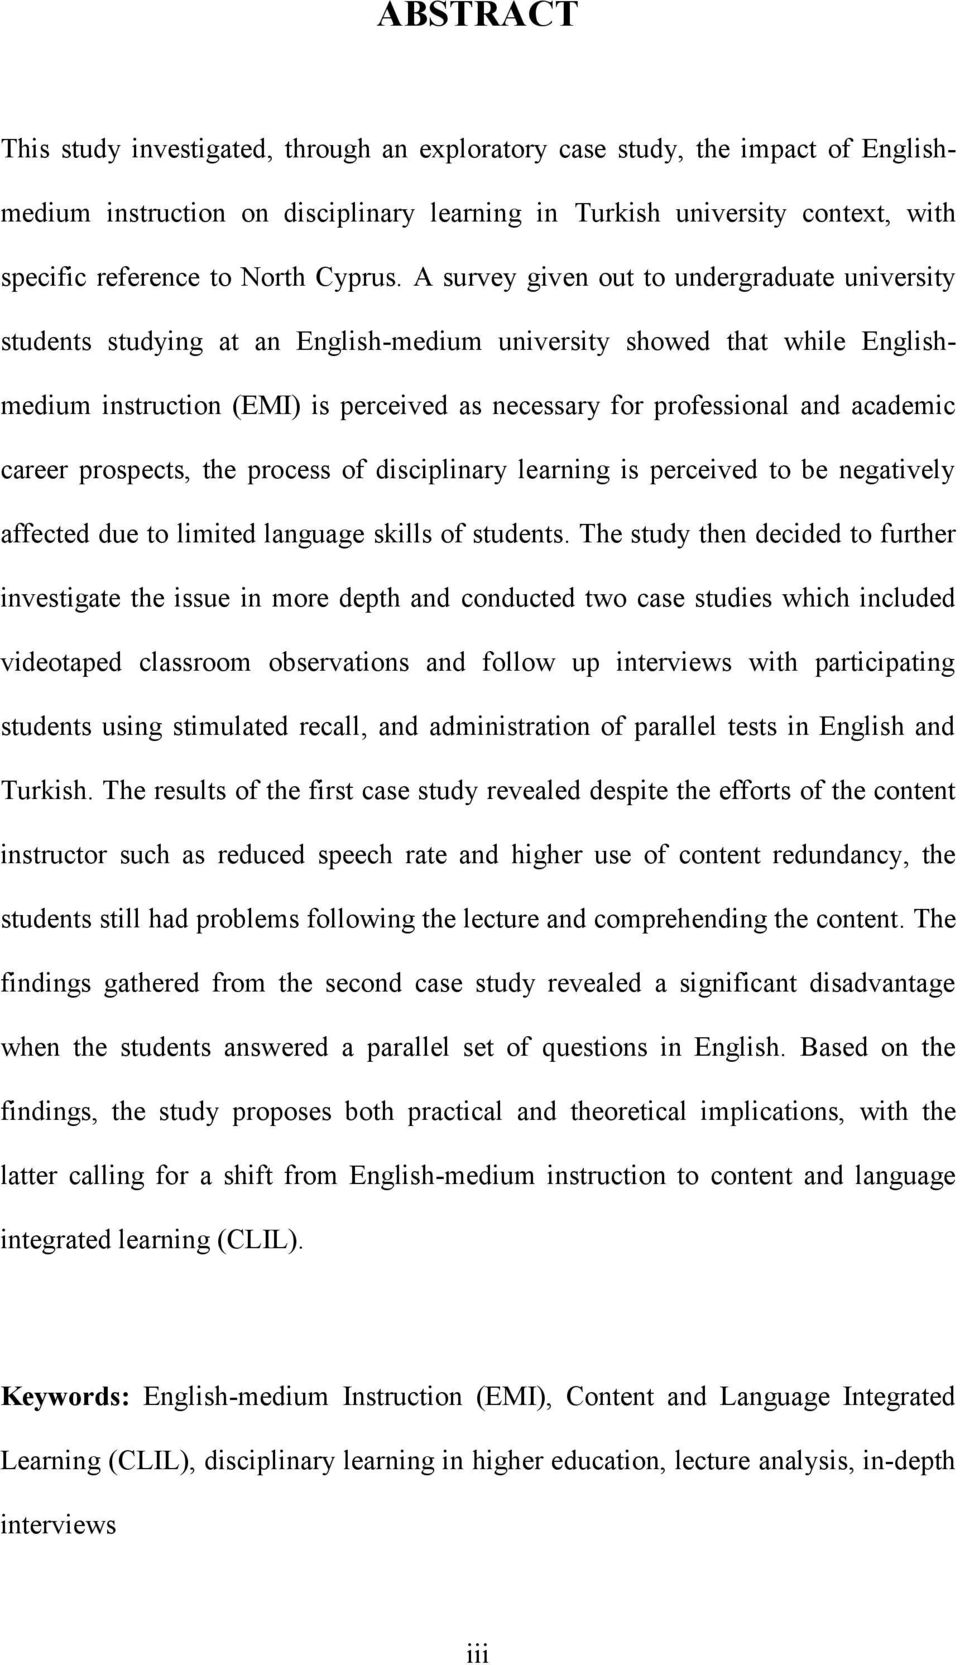 A survey given out to undergraduate university students studying at an English-medium university showed that while Englishmedium instruction (EMI) is perceived as necessary for professional and